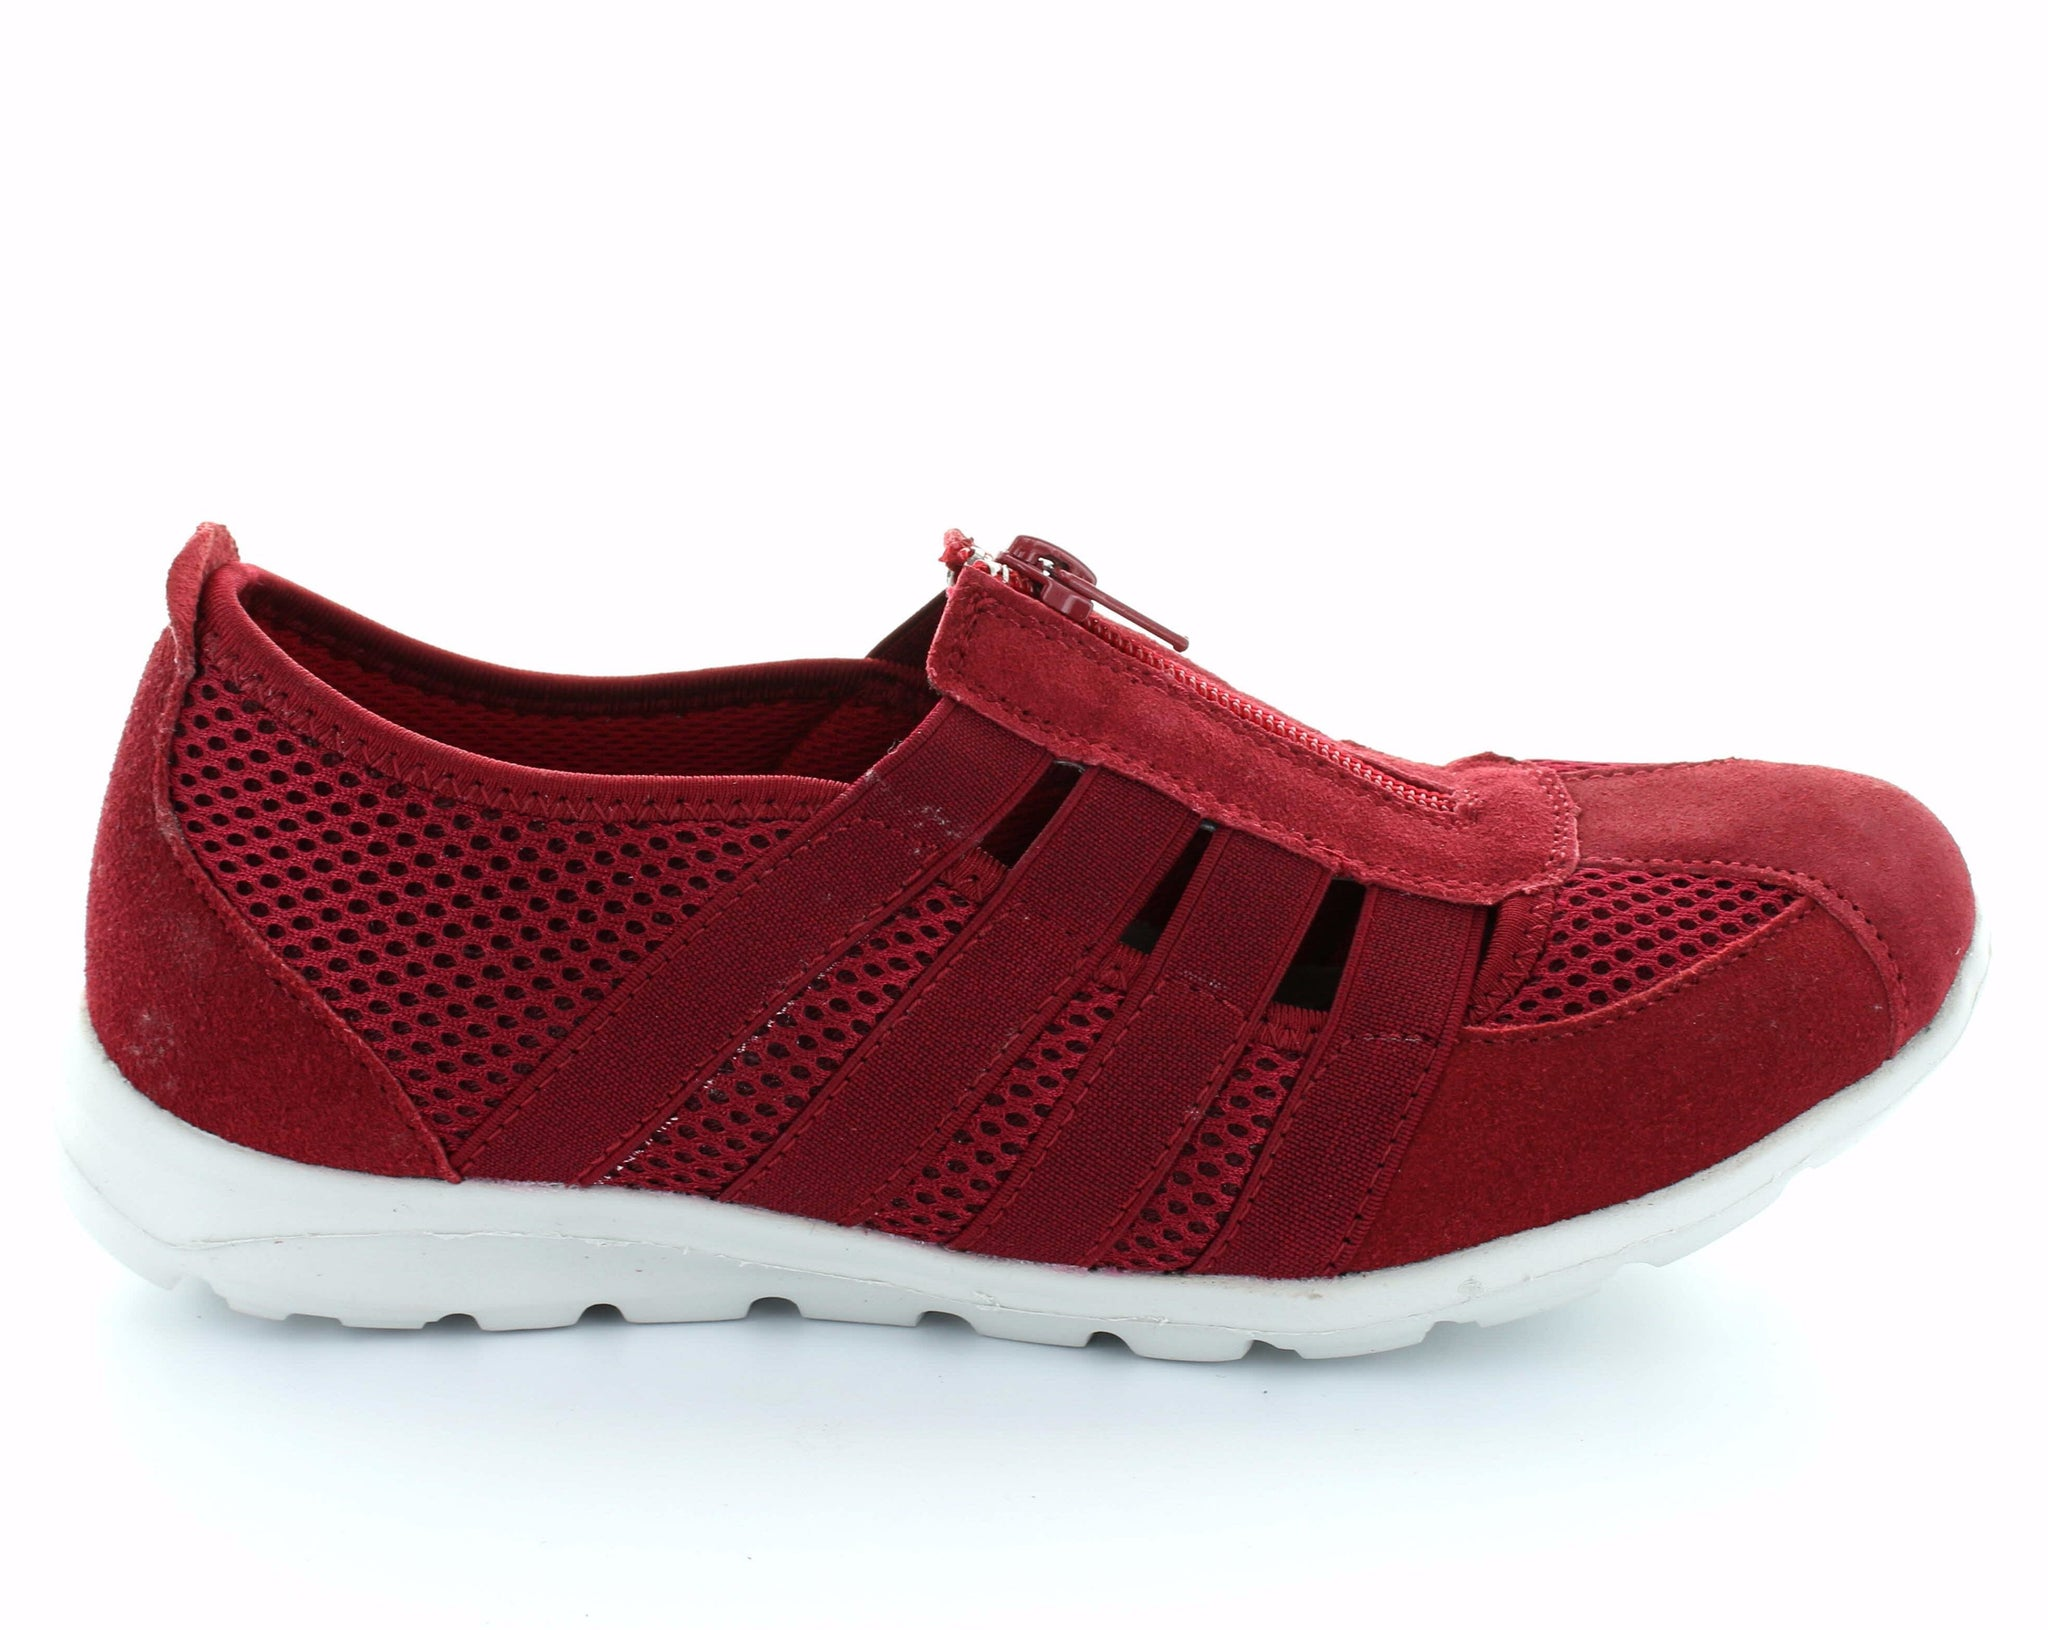 CC Resorts Christine Red Casual Walking Shoes With Elastic & Zip Upper